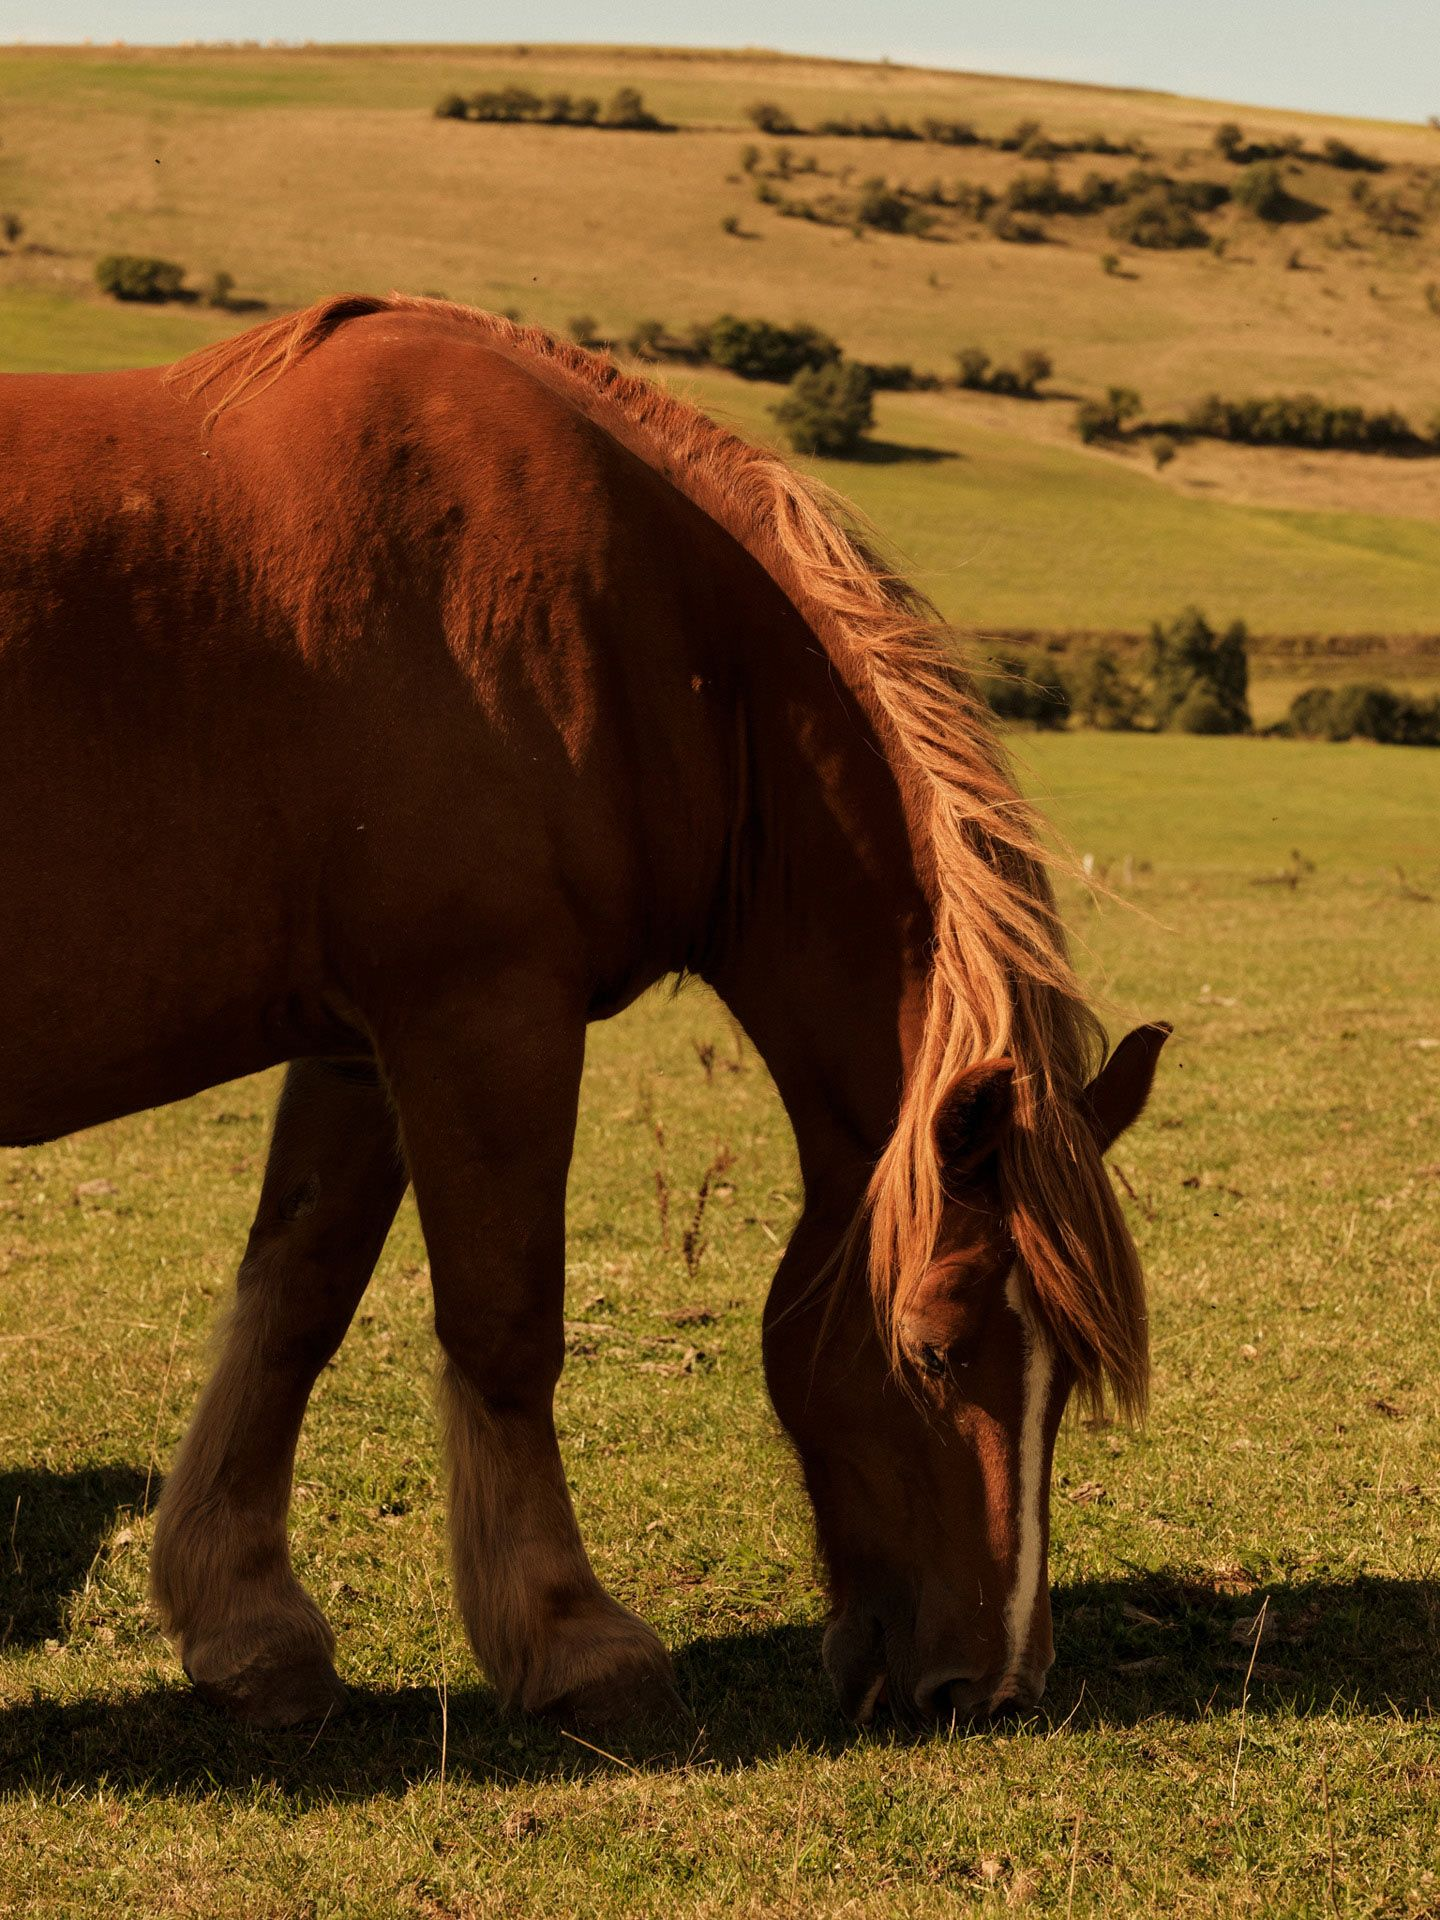 percheron horse eating grass by Alexi Hobbs in Auvergne for Reflets de France